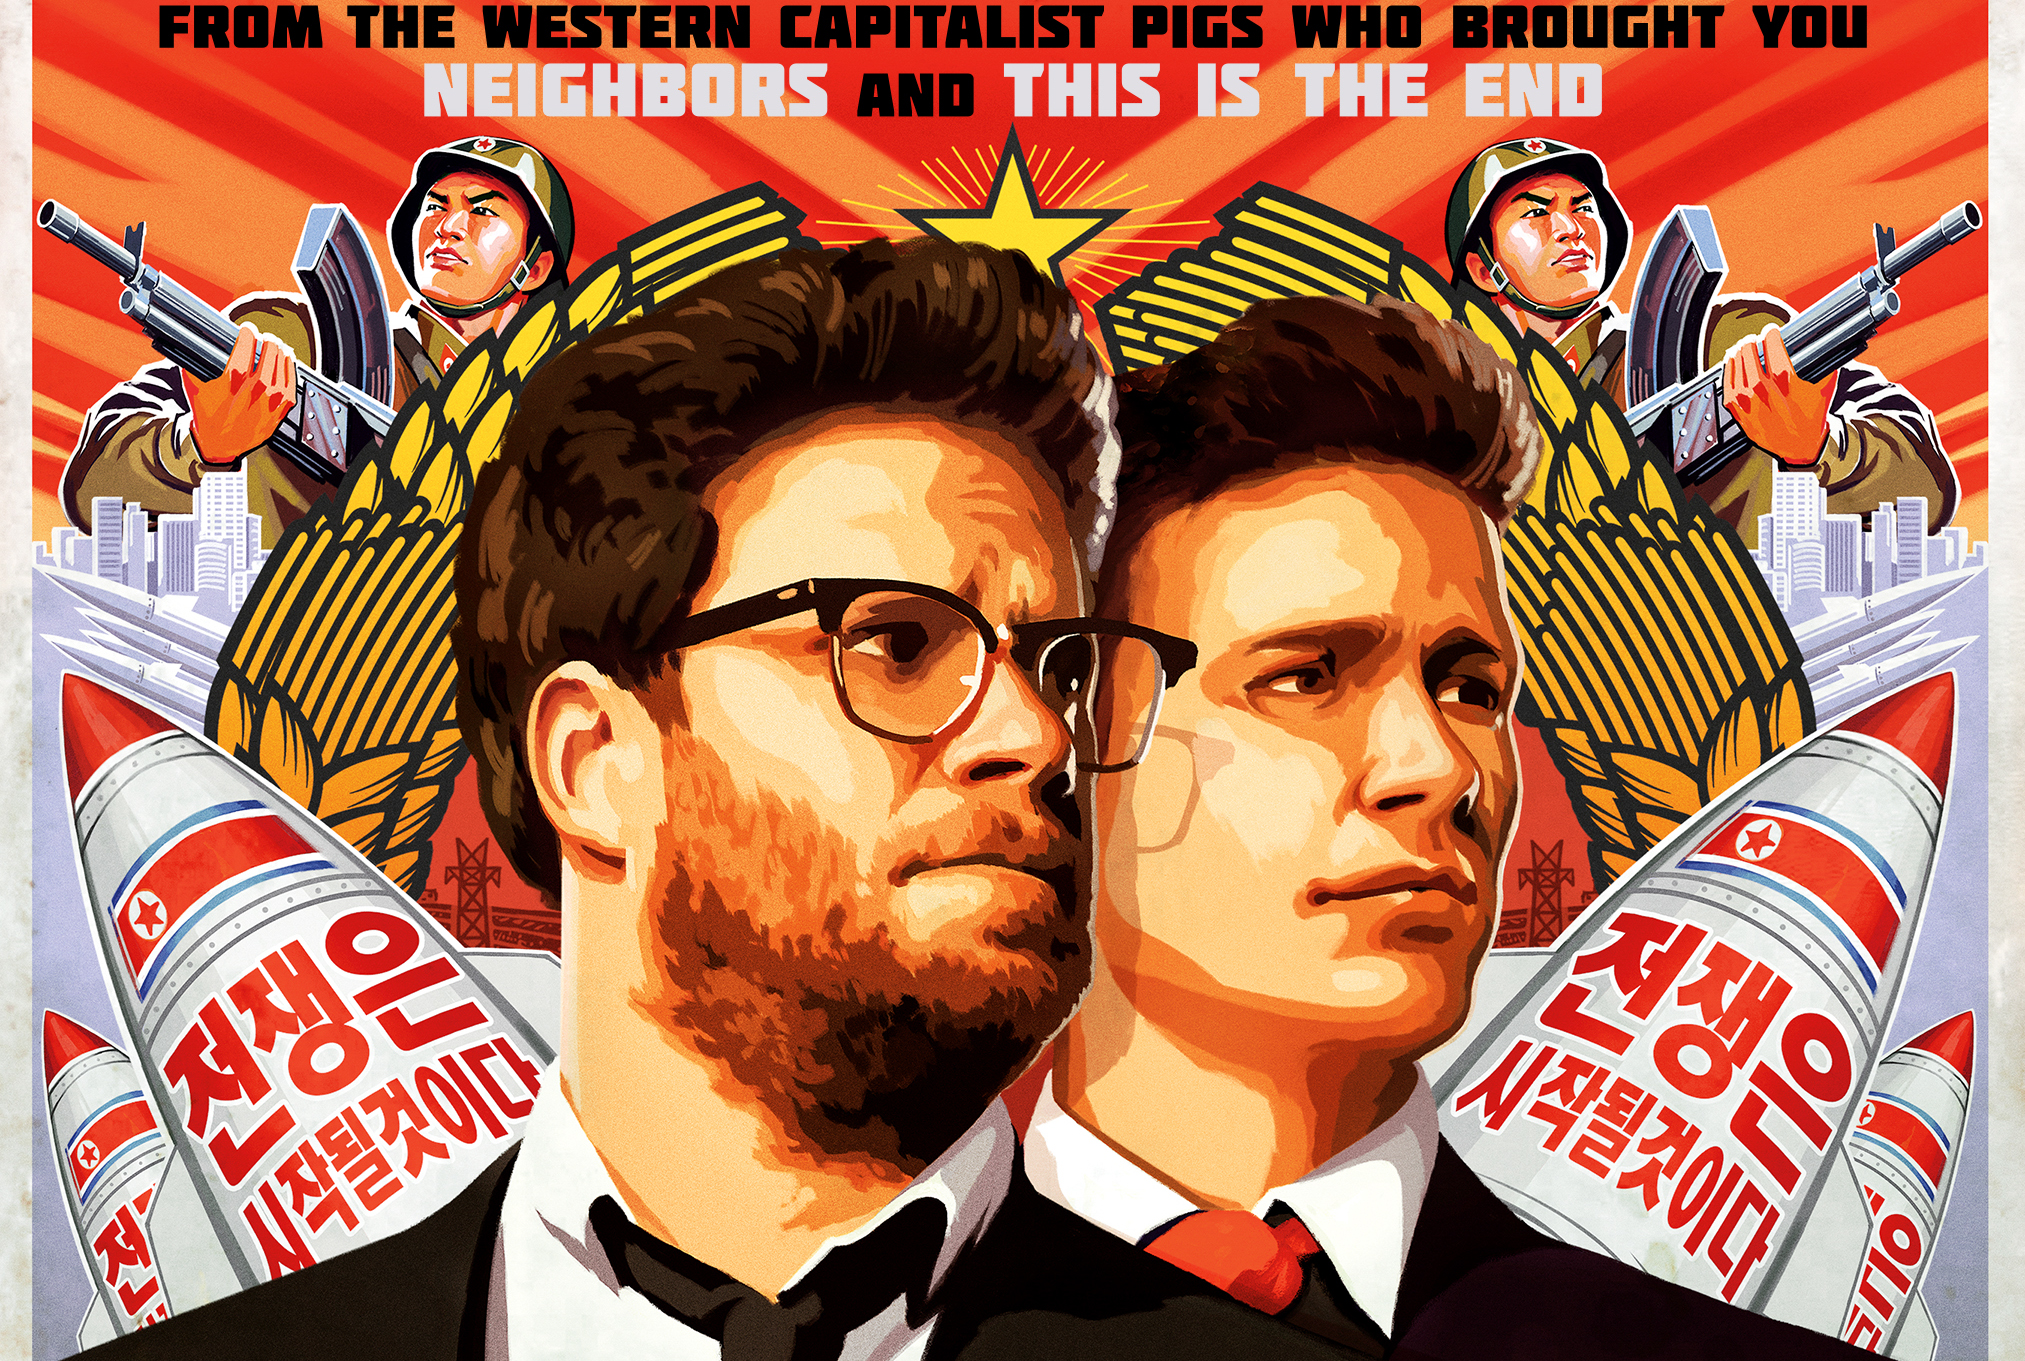 The Interview comes to theaters on Dec. 25th, 2014.